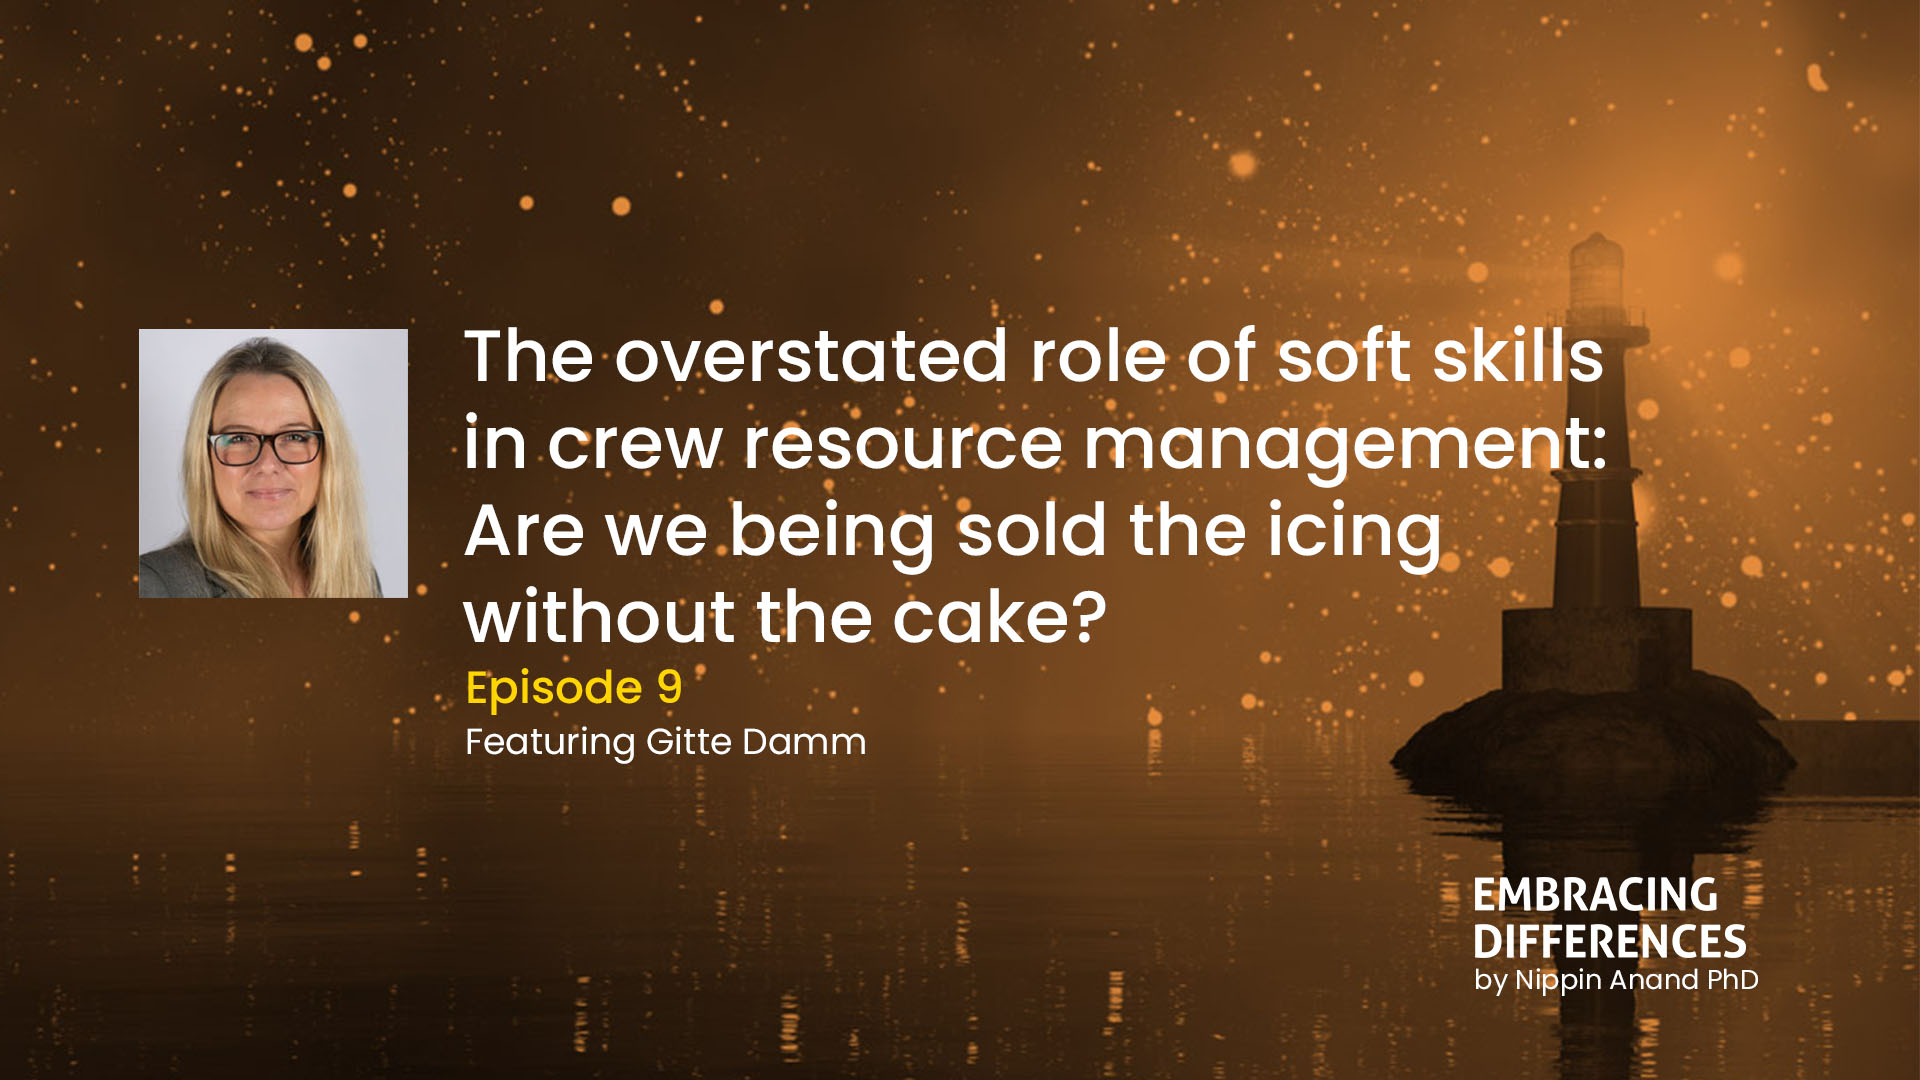 The overstated role of soft skills in crew resource management: Are we being sold the icing without the cake?